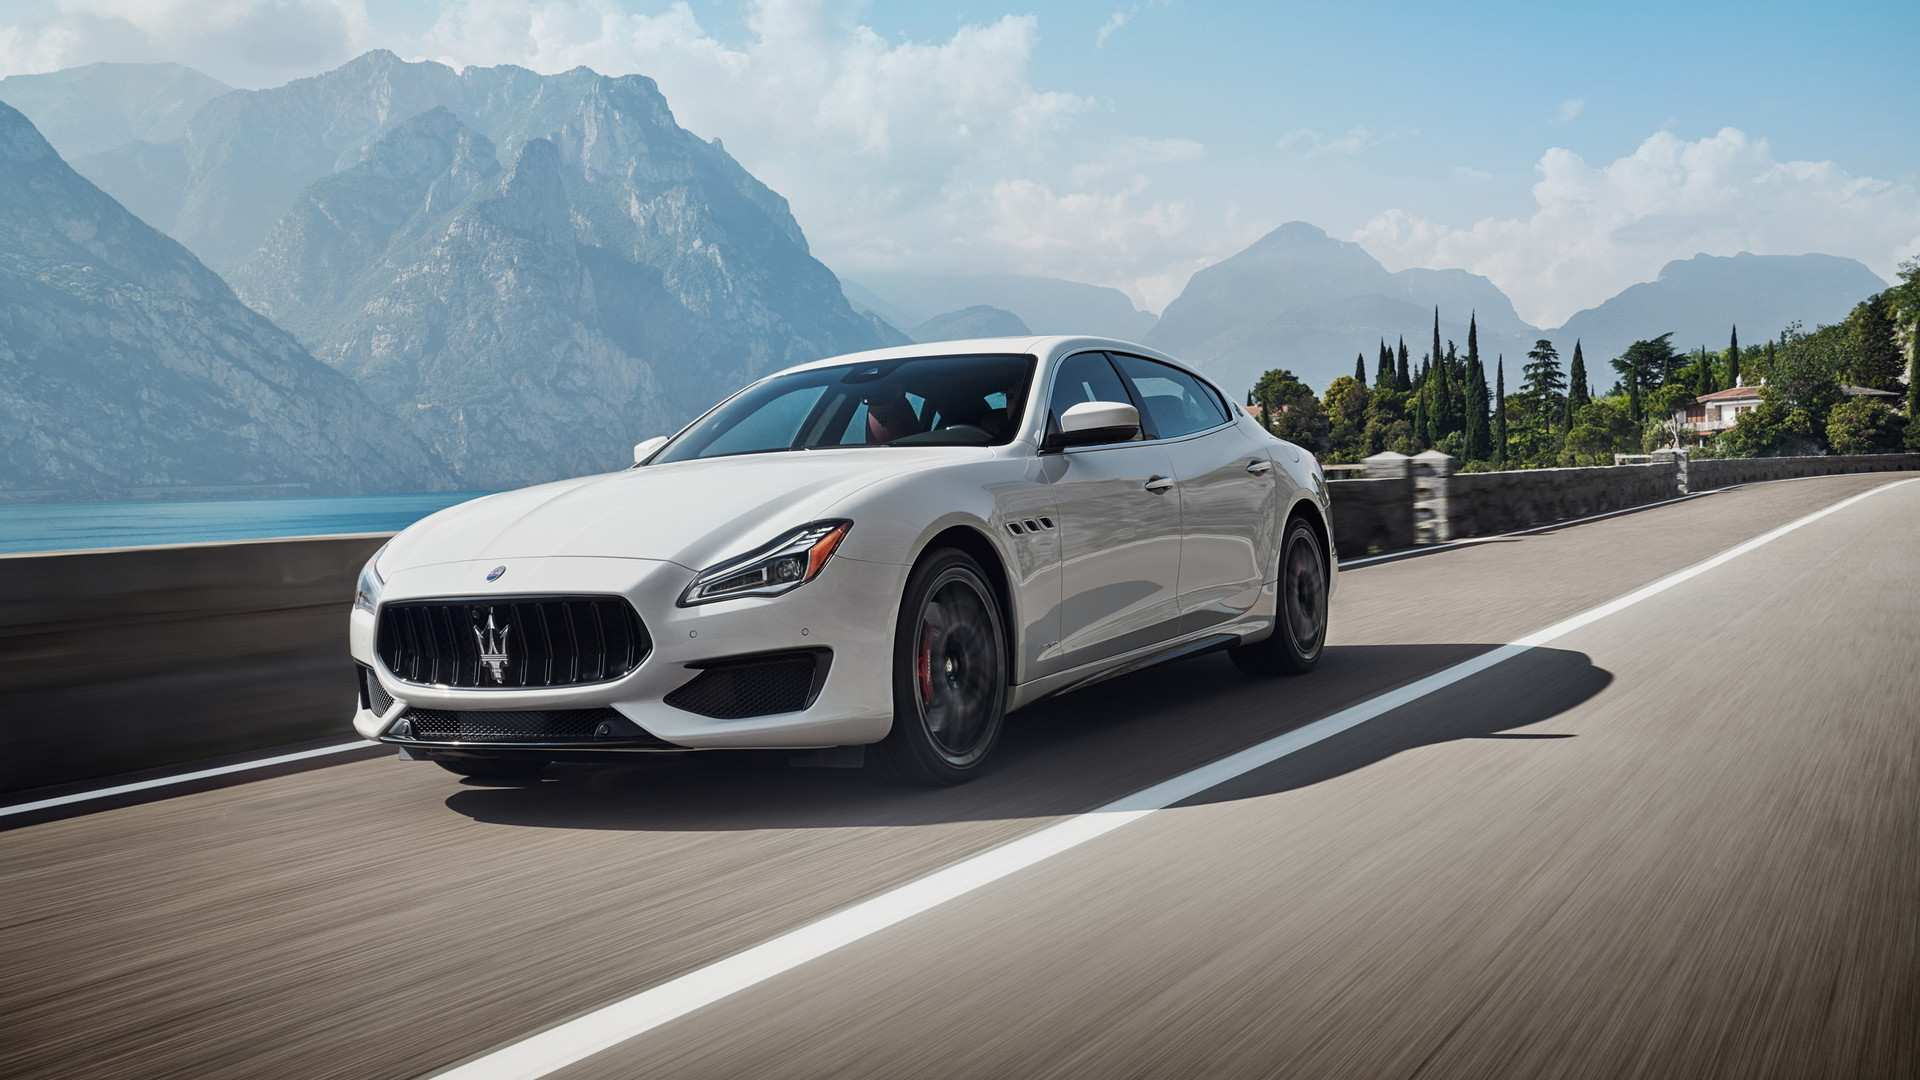 39 Concept of Maserati Quattroporte Gts 2019 Photos by Maserati Quattroporte Gts 2019